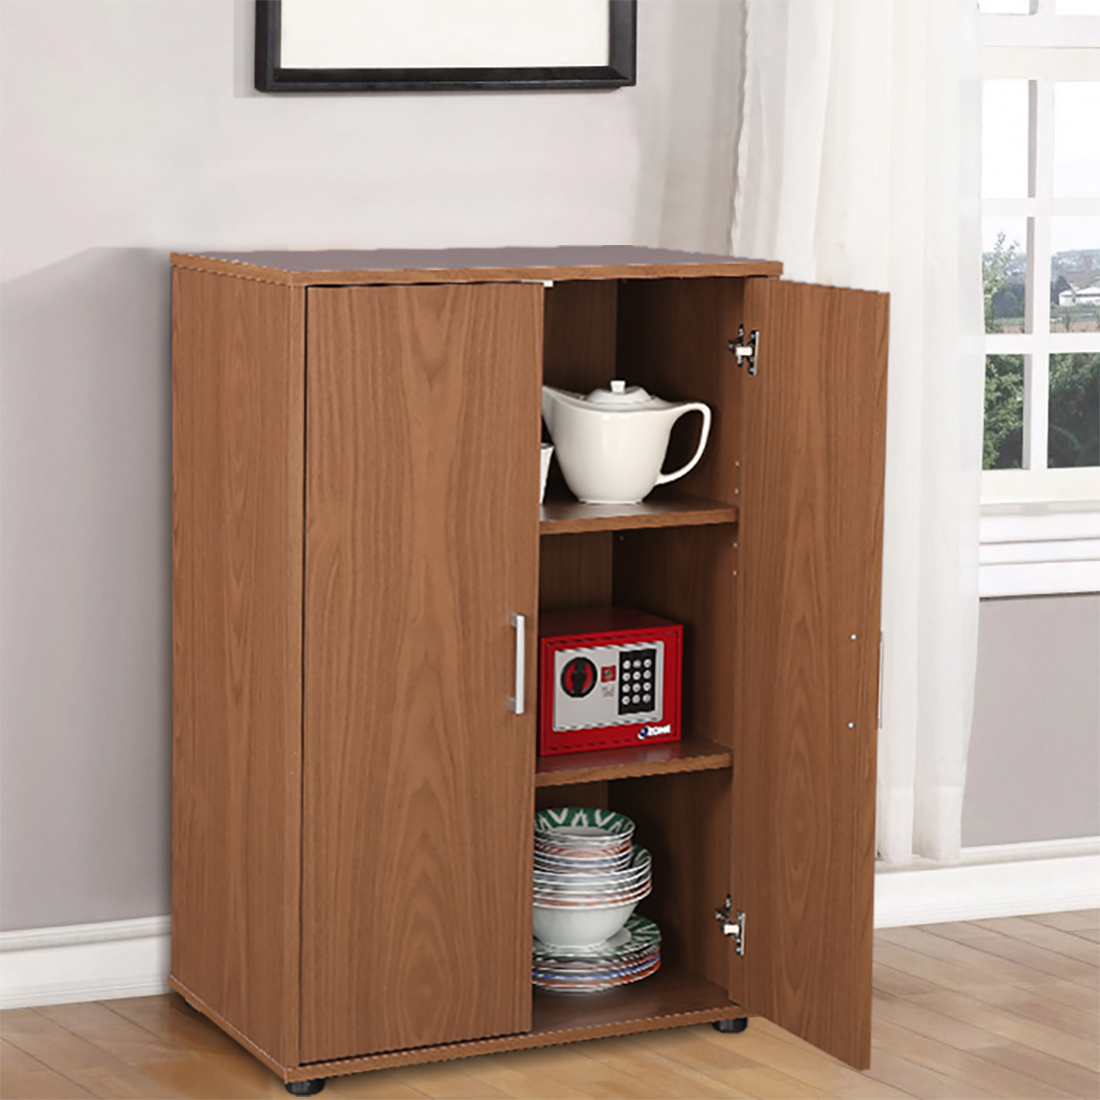 Henley Engineered Wood Multipurpose Cabinet in Walnut Colour by HomeTown